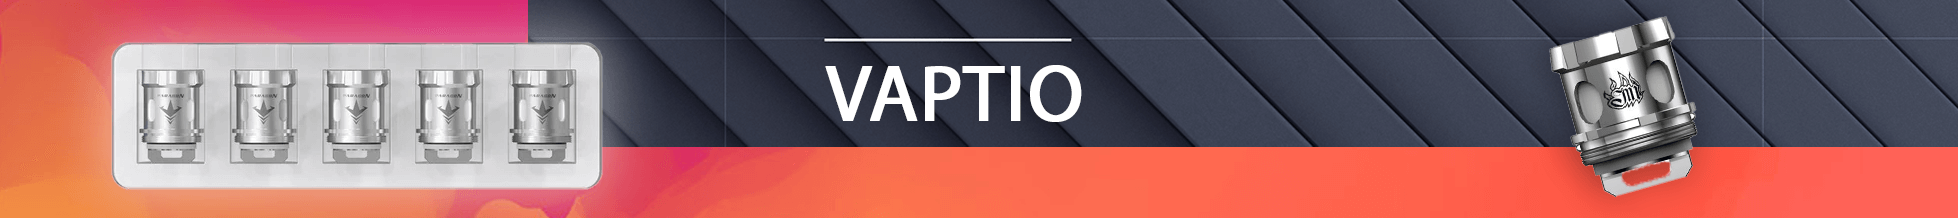 vapito-category-banner.png